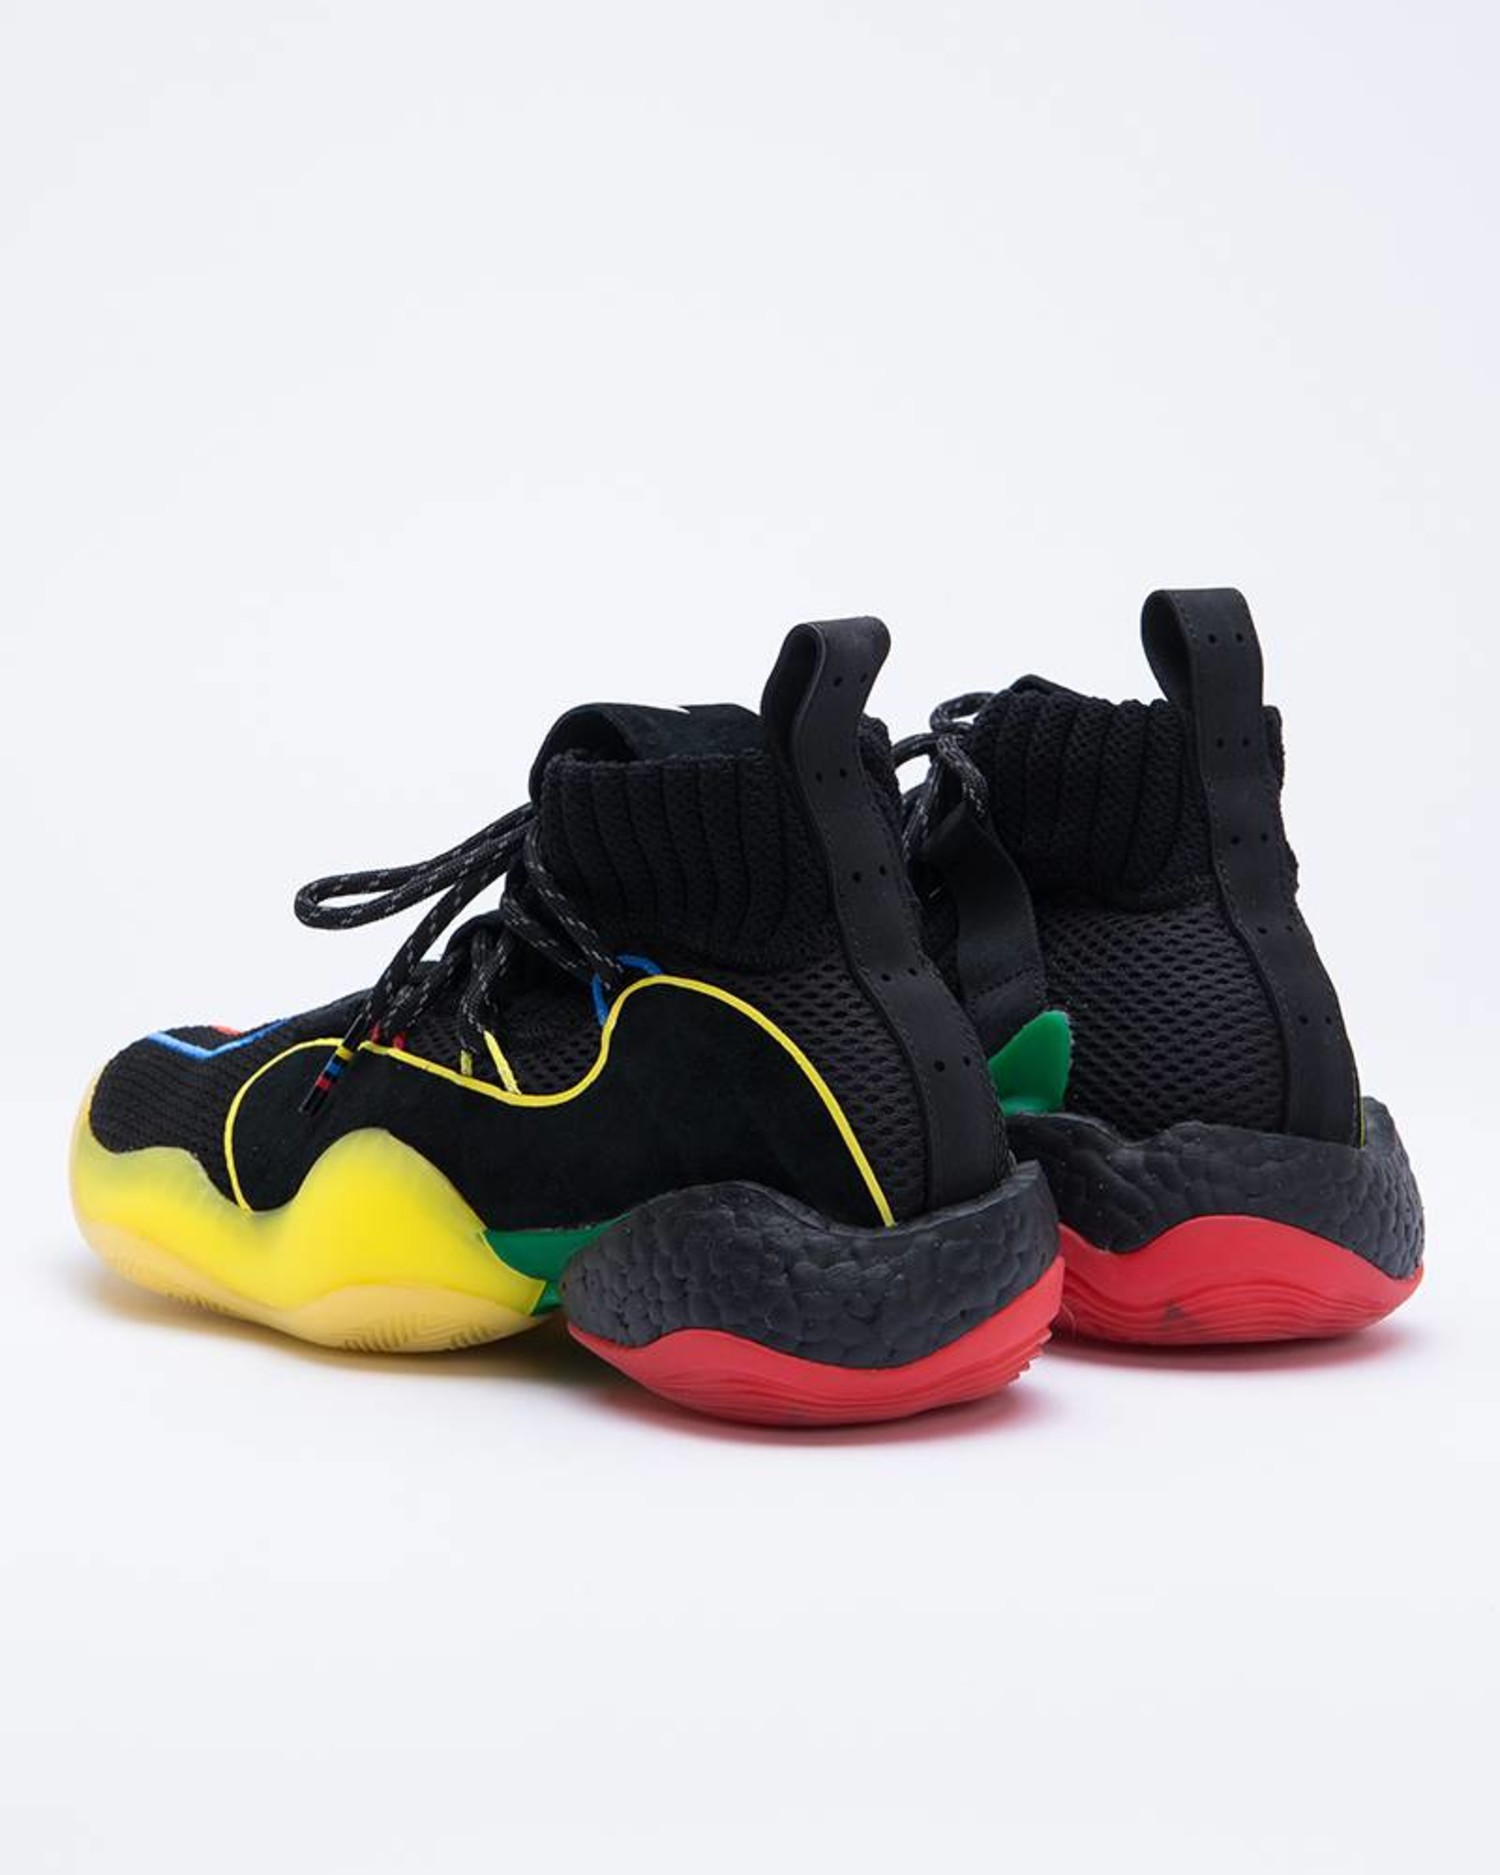 official photos 753a5 d03f7 Adidas Crazy BYW LVL X PW